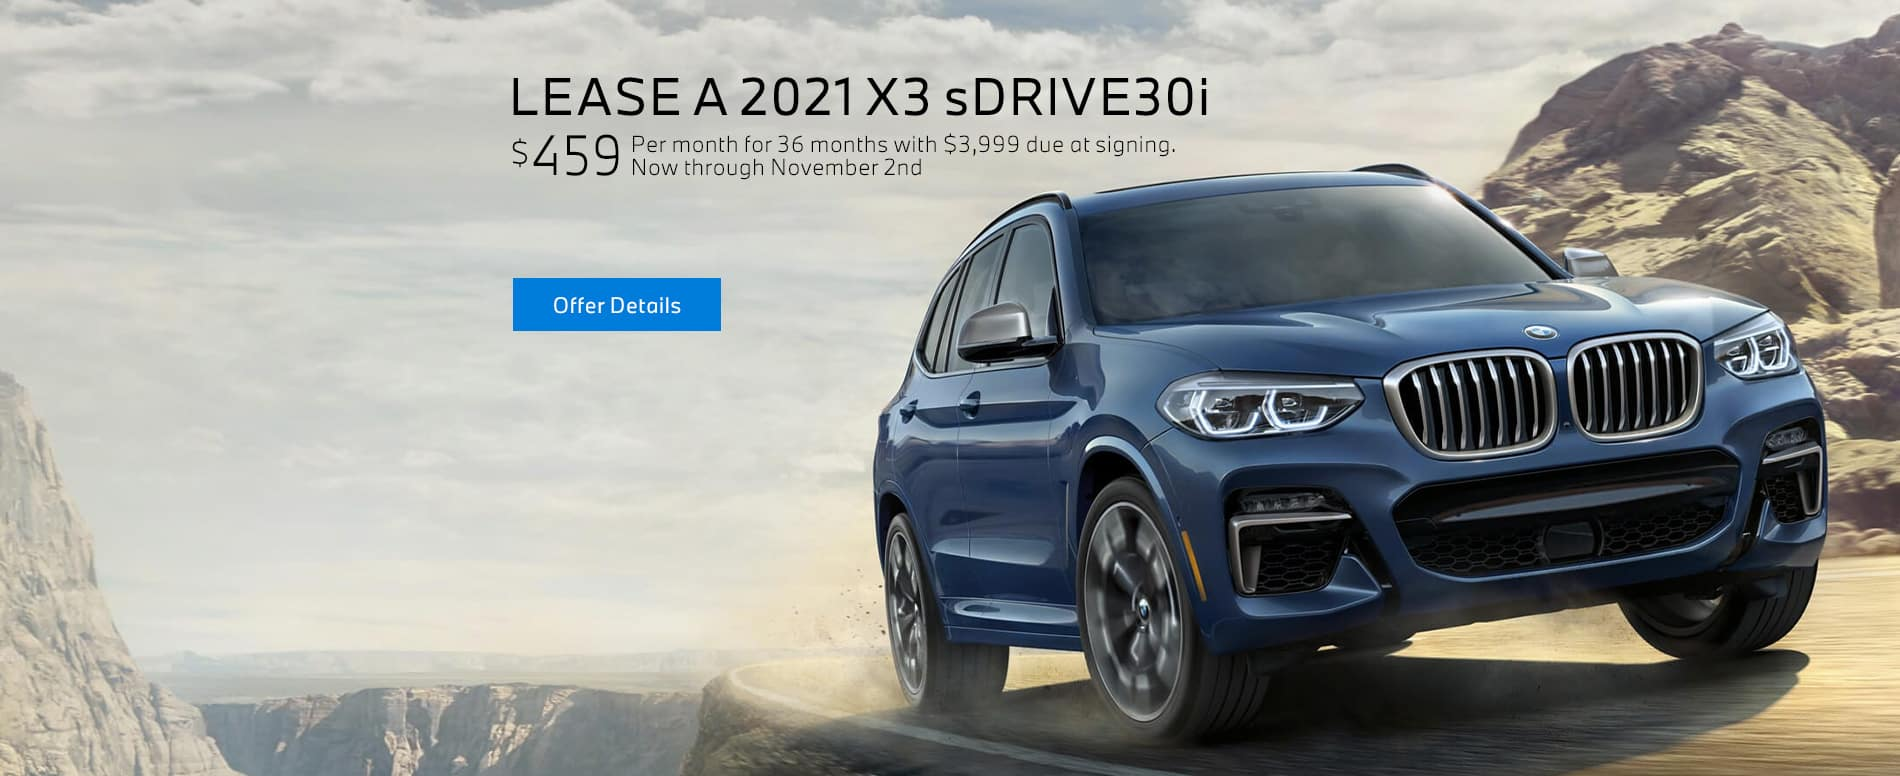 Lease a 2021 BMW X3 sDRIVE30i for $459/mo at BMW of Fort Walton Beach